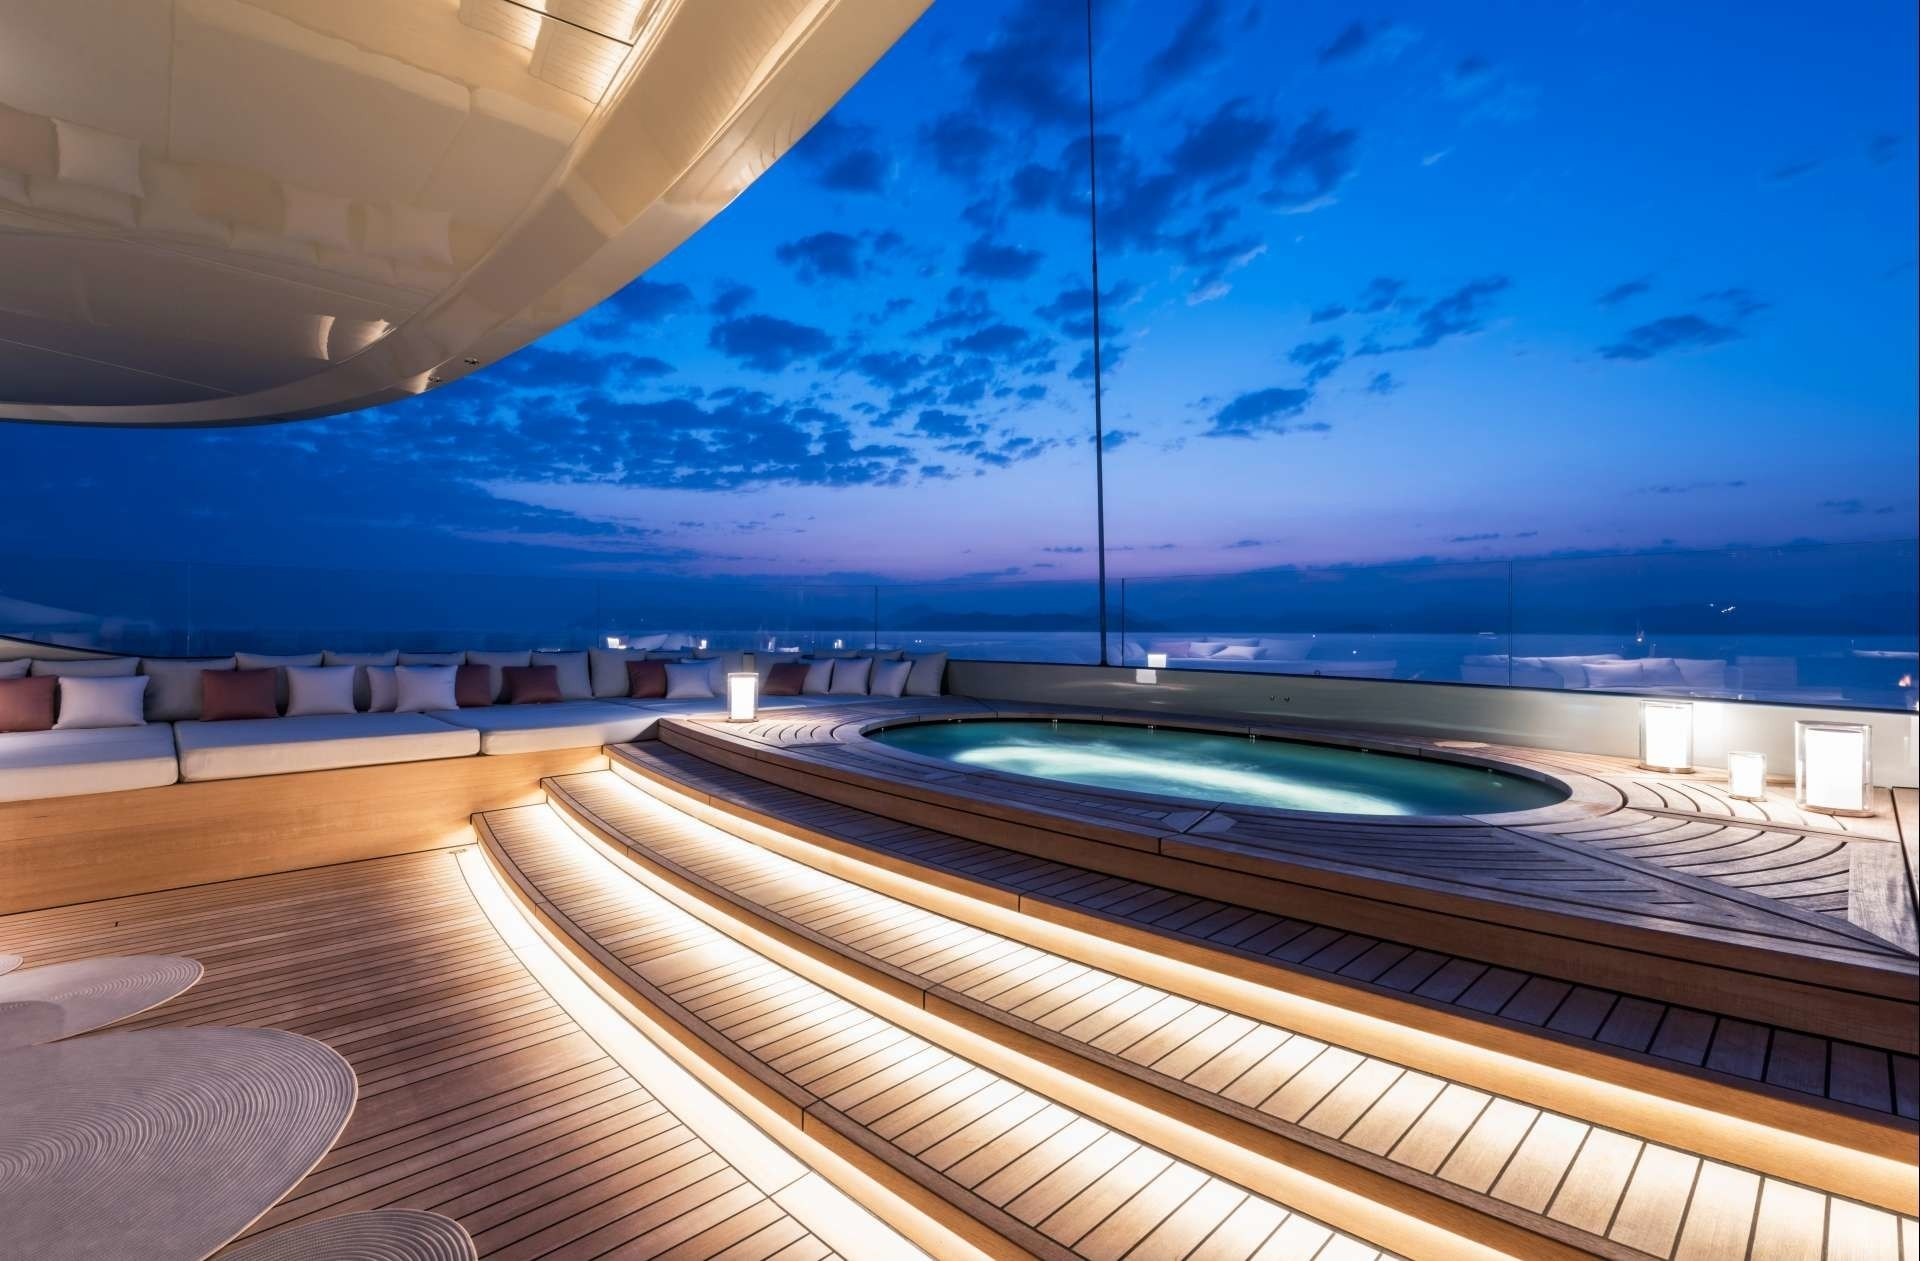 Jacuzzi pool by night on the sun deck